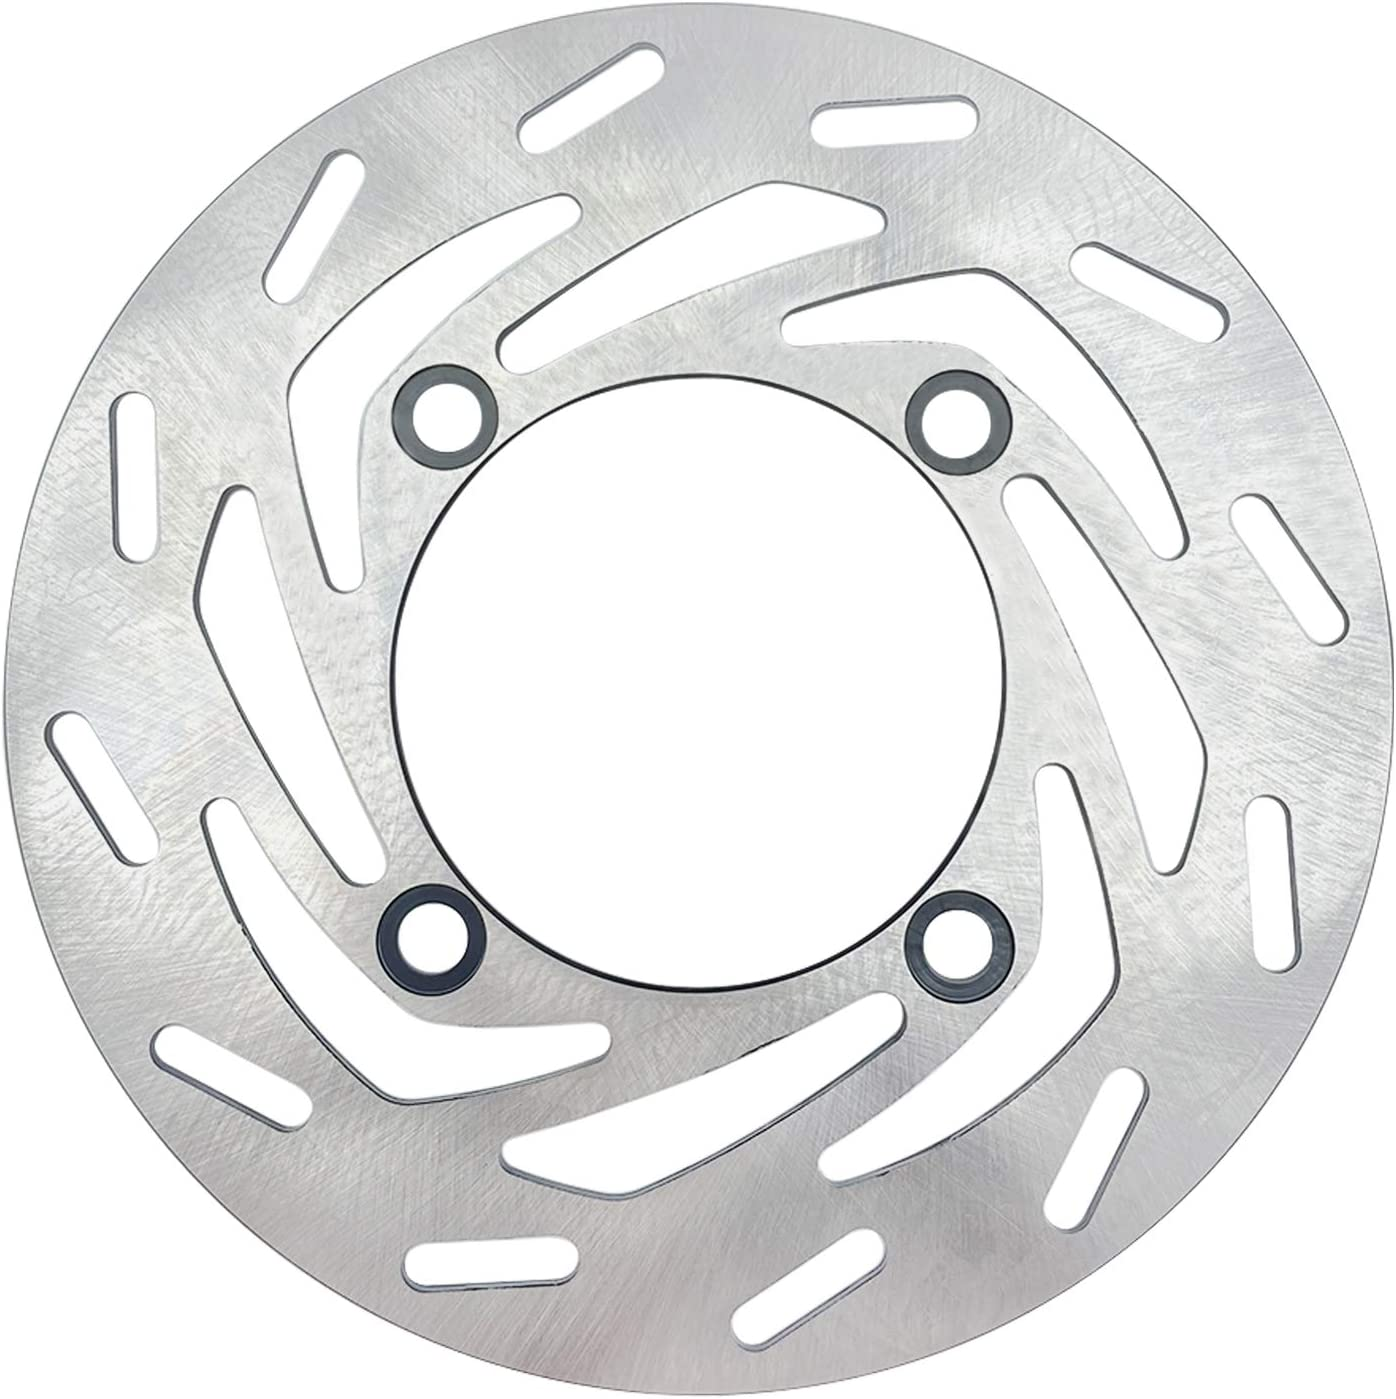 M MATI Front Left//Right Brake Disc Rotor 1HP-F582T-00-00 for Yamaha Kodiak 700 YFM700 2016-2020 Grizzly 550 YFM550 2009-2014 Grizzly 700 YFM700 2007-2020